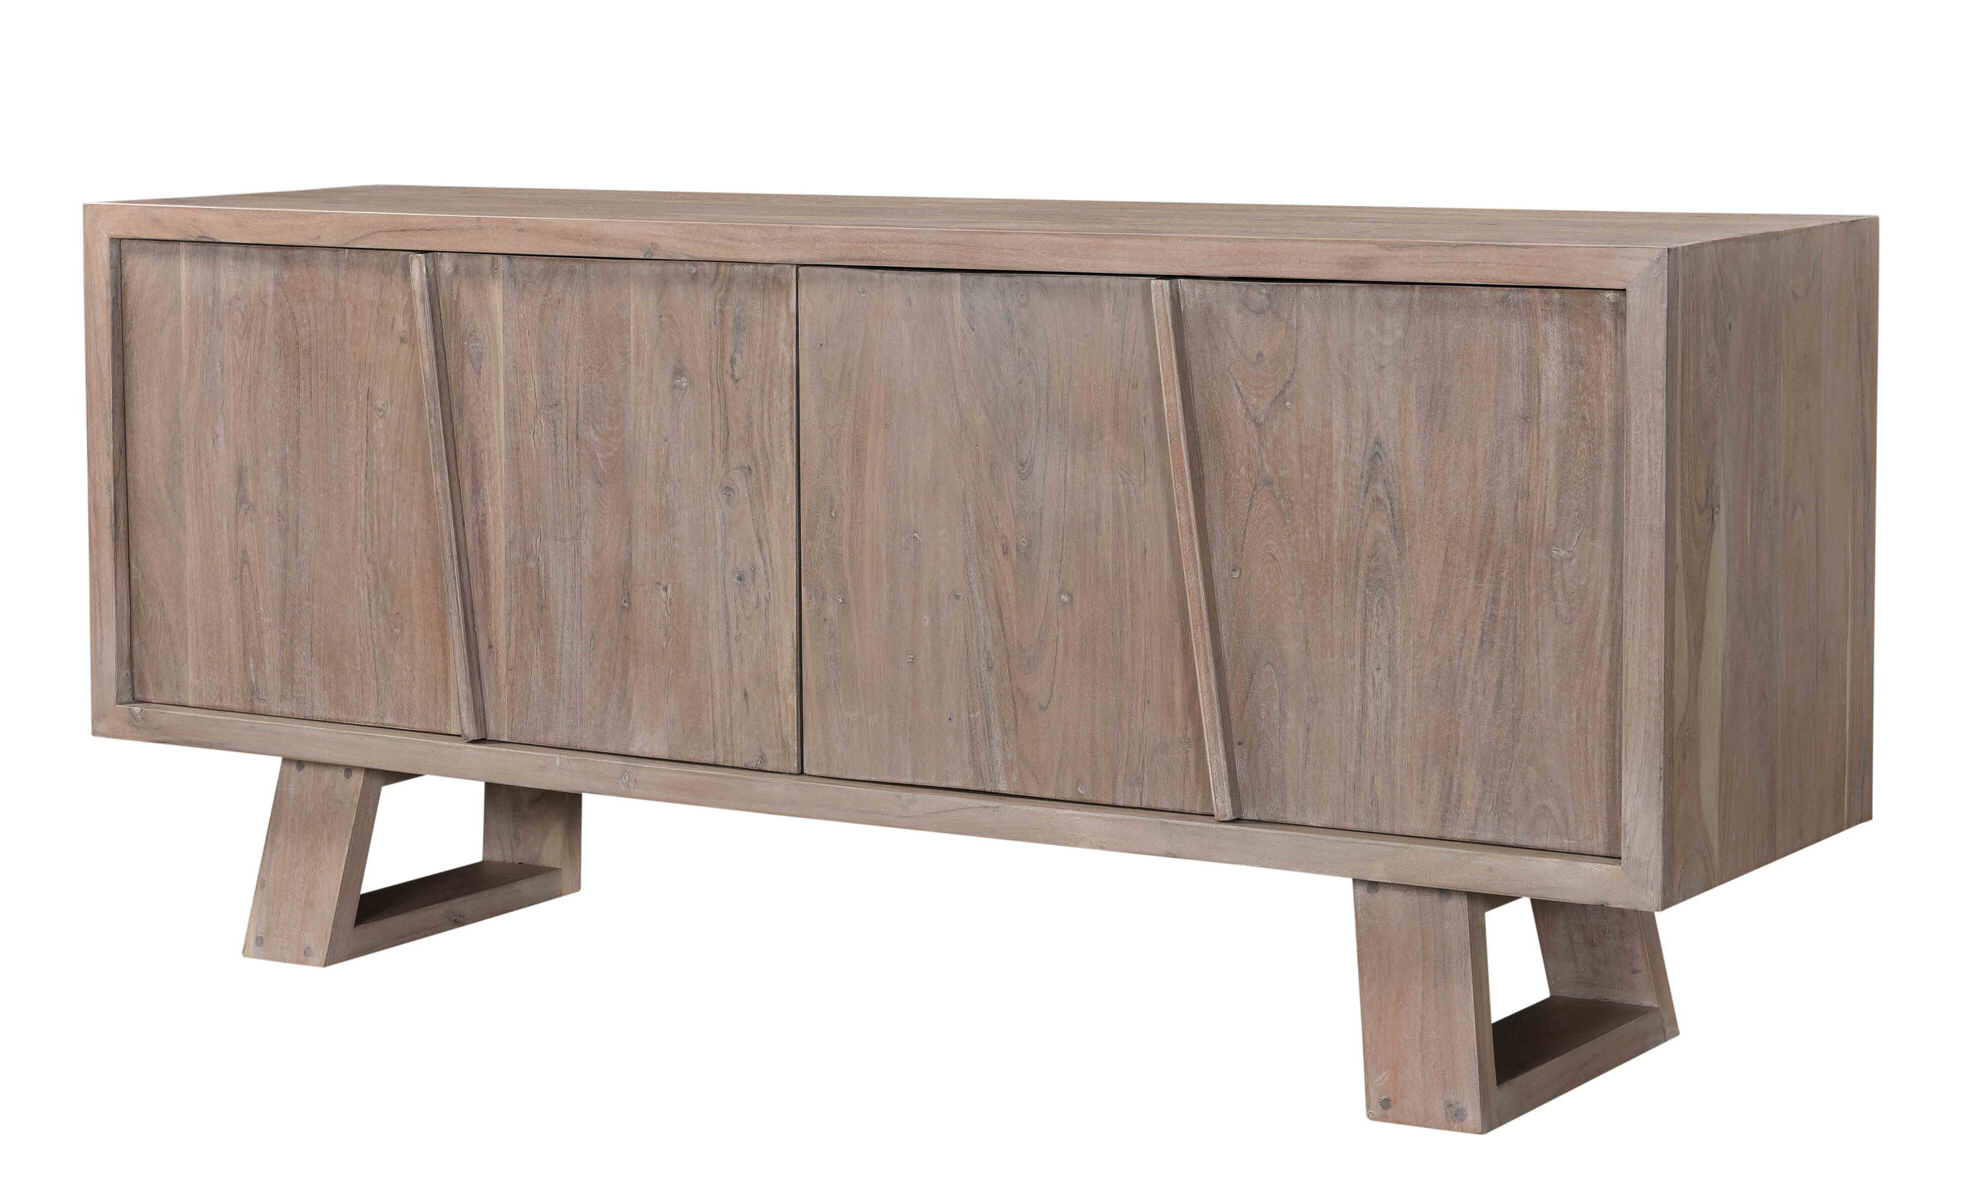 Most Recent Rosser Sideboard Inside Sideboards By Foundry Select (View 10 of 20)